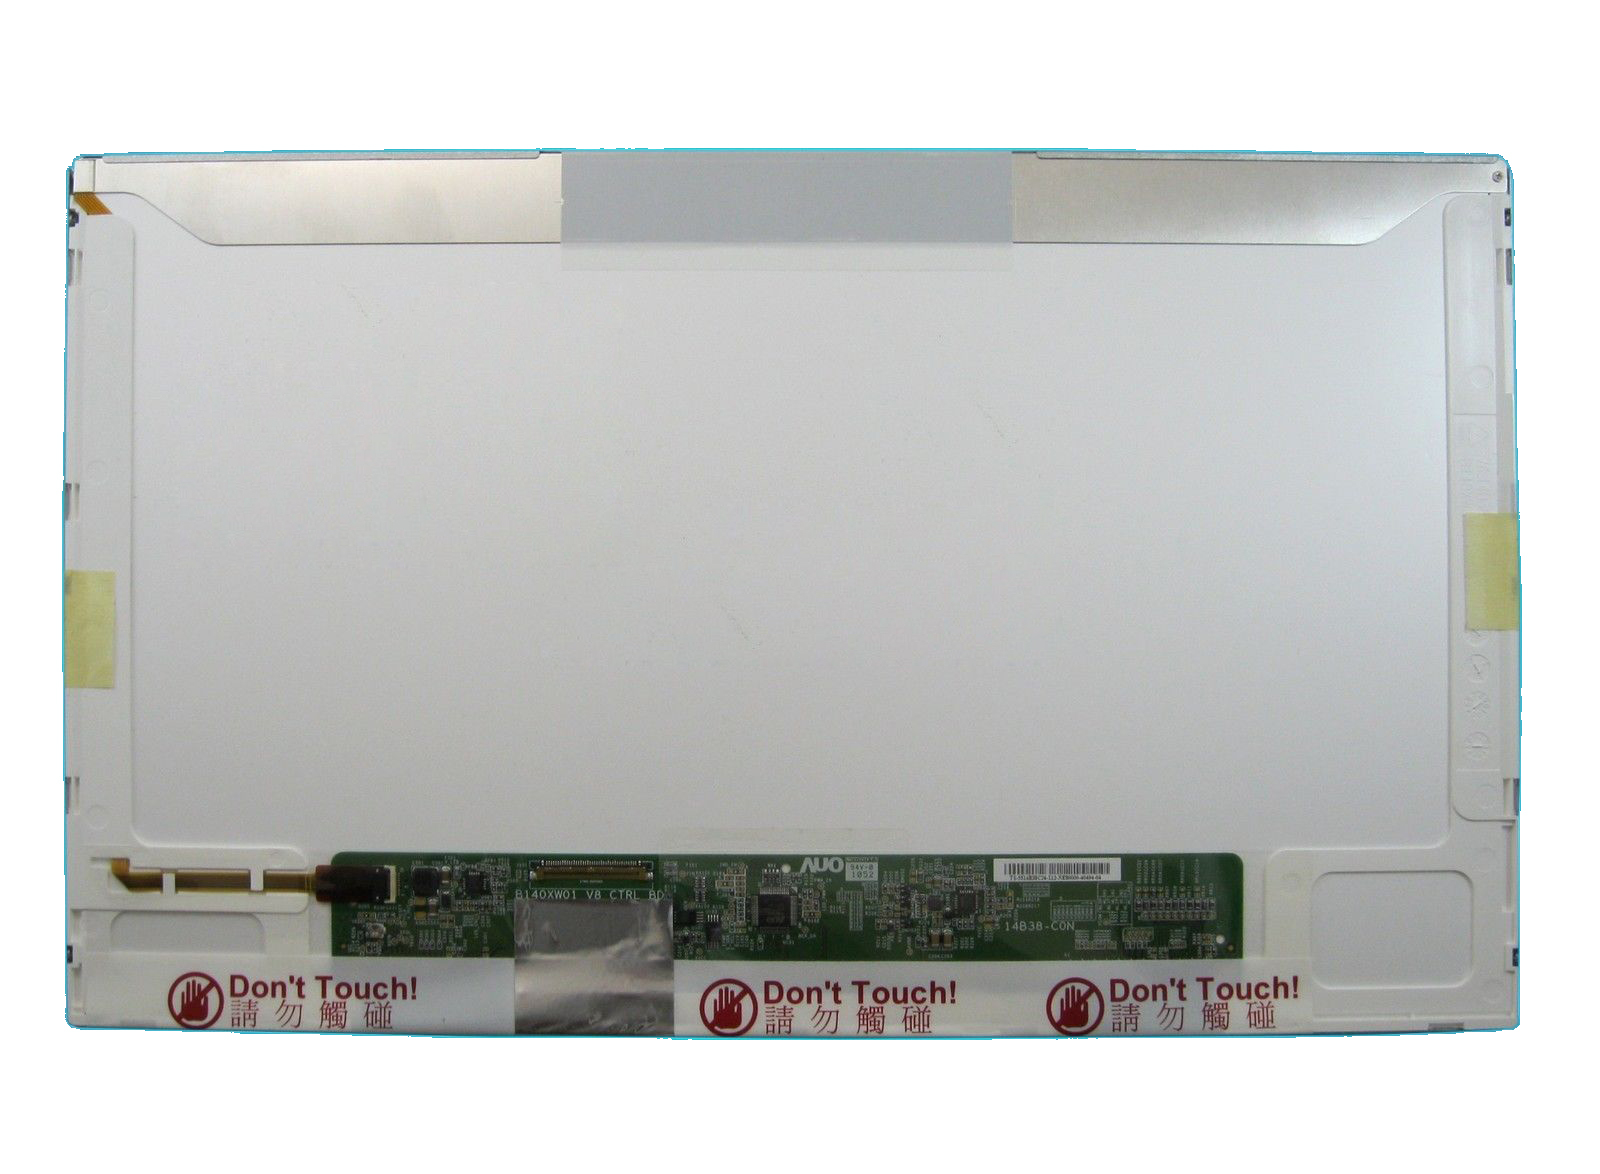 где купить QuYing Laptop LCD Screen for ACER ASPIRE EMACHINES D725 V3-431 ZQT E1-431 E1-421 E1-471 SERIES (14.0 inch 1366x768 40pin TK) по лучшей цене